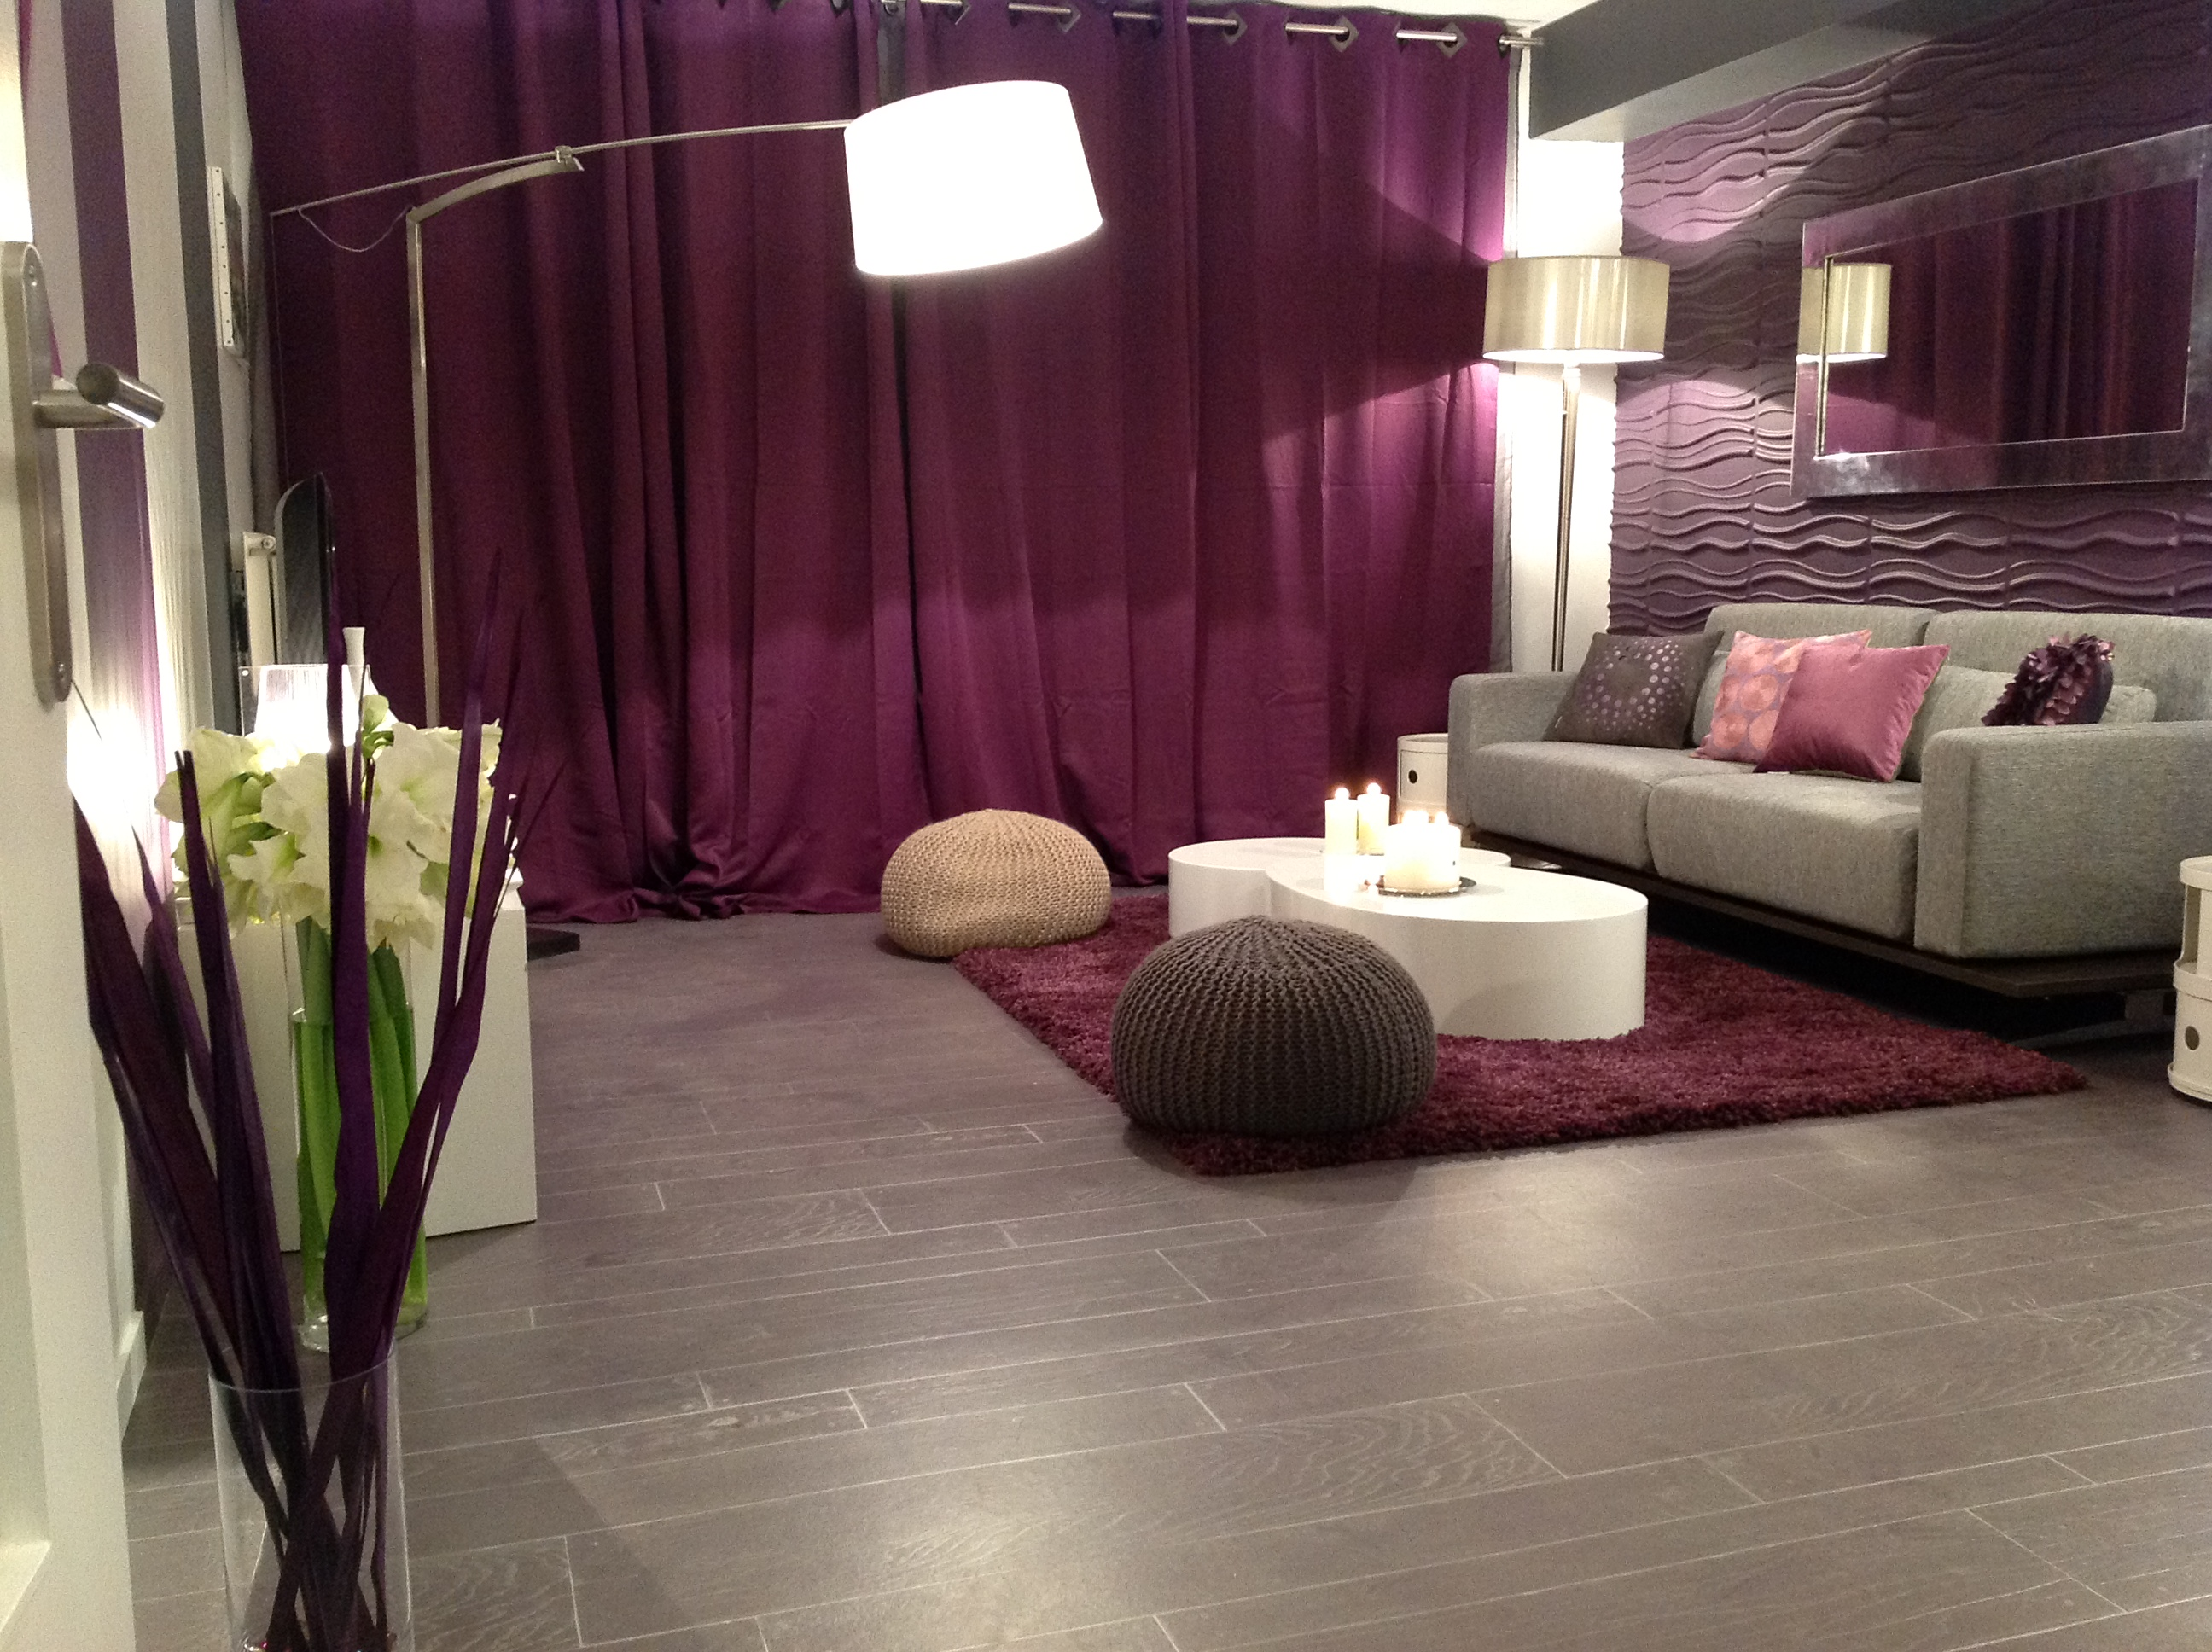 D coration salon gris et prune - Decoration salon mauve et gris ...